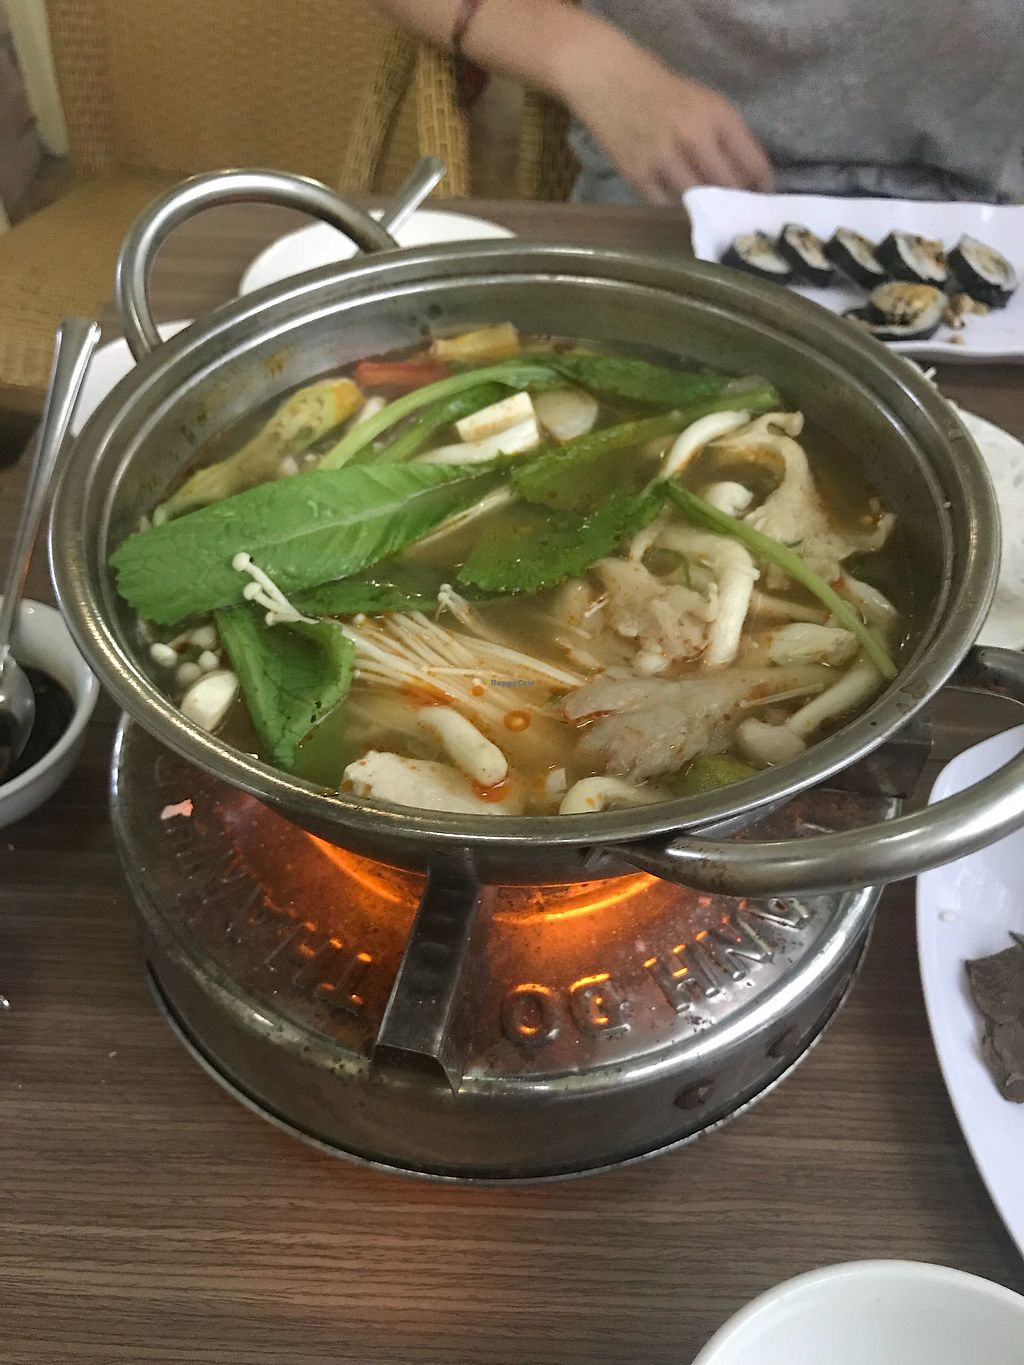 """Photo of An Nhien  by <a href=""""/members/profile/AnnaLevshin"""">AnnaLevshin</a> <br/>Mushroom hot pot <br/> April 14, 2018  - <a href='/contact/abuse/image/91296/385725'>Report</a>"""